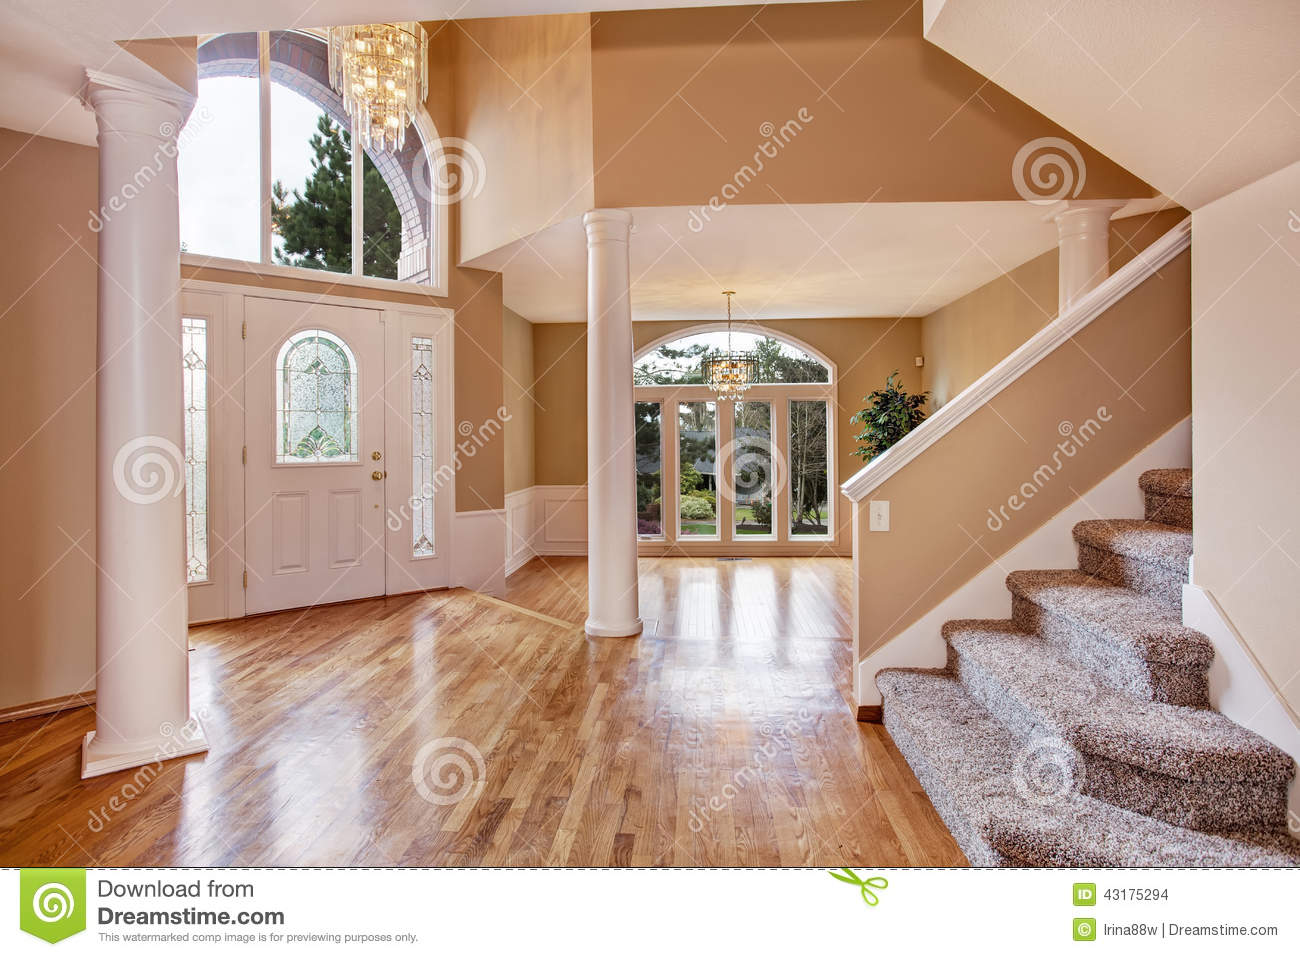 Entrance Foyer And Circulation In House : Foyer magnifique dans la maison de luxe photo stock